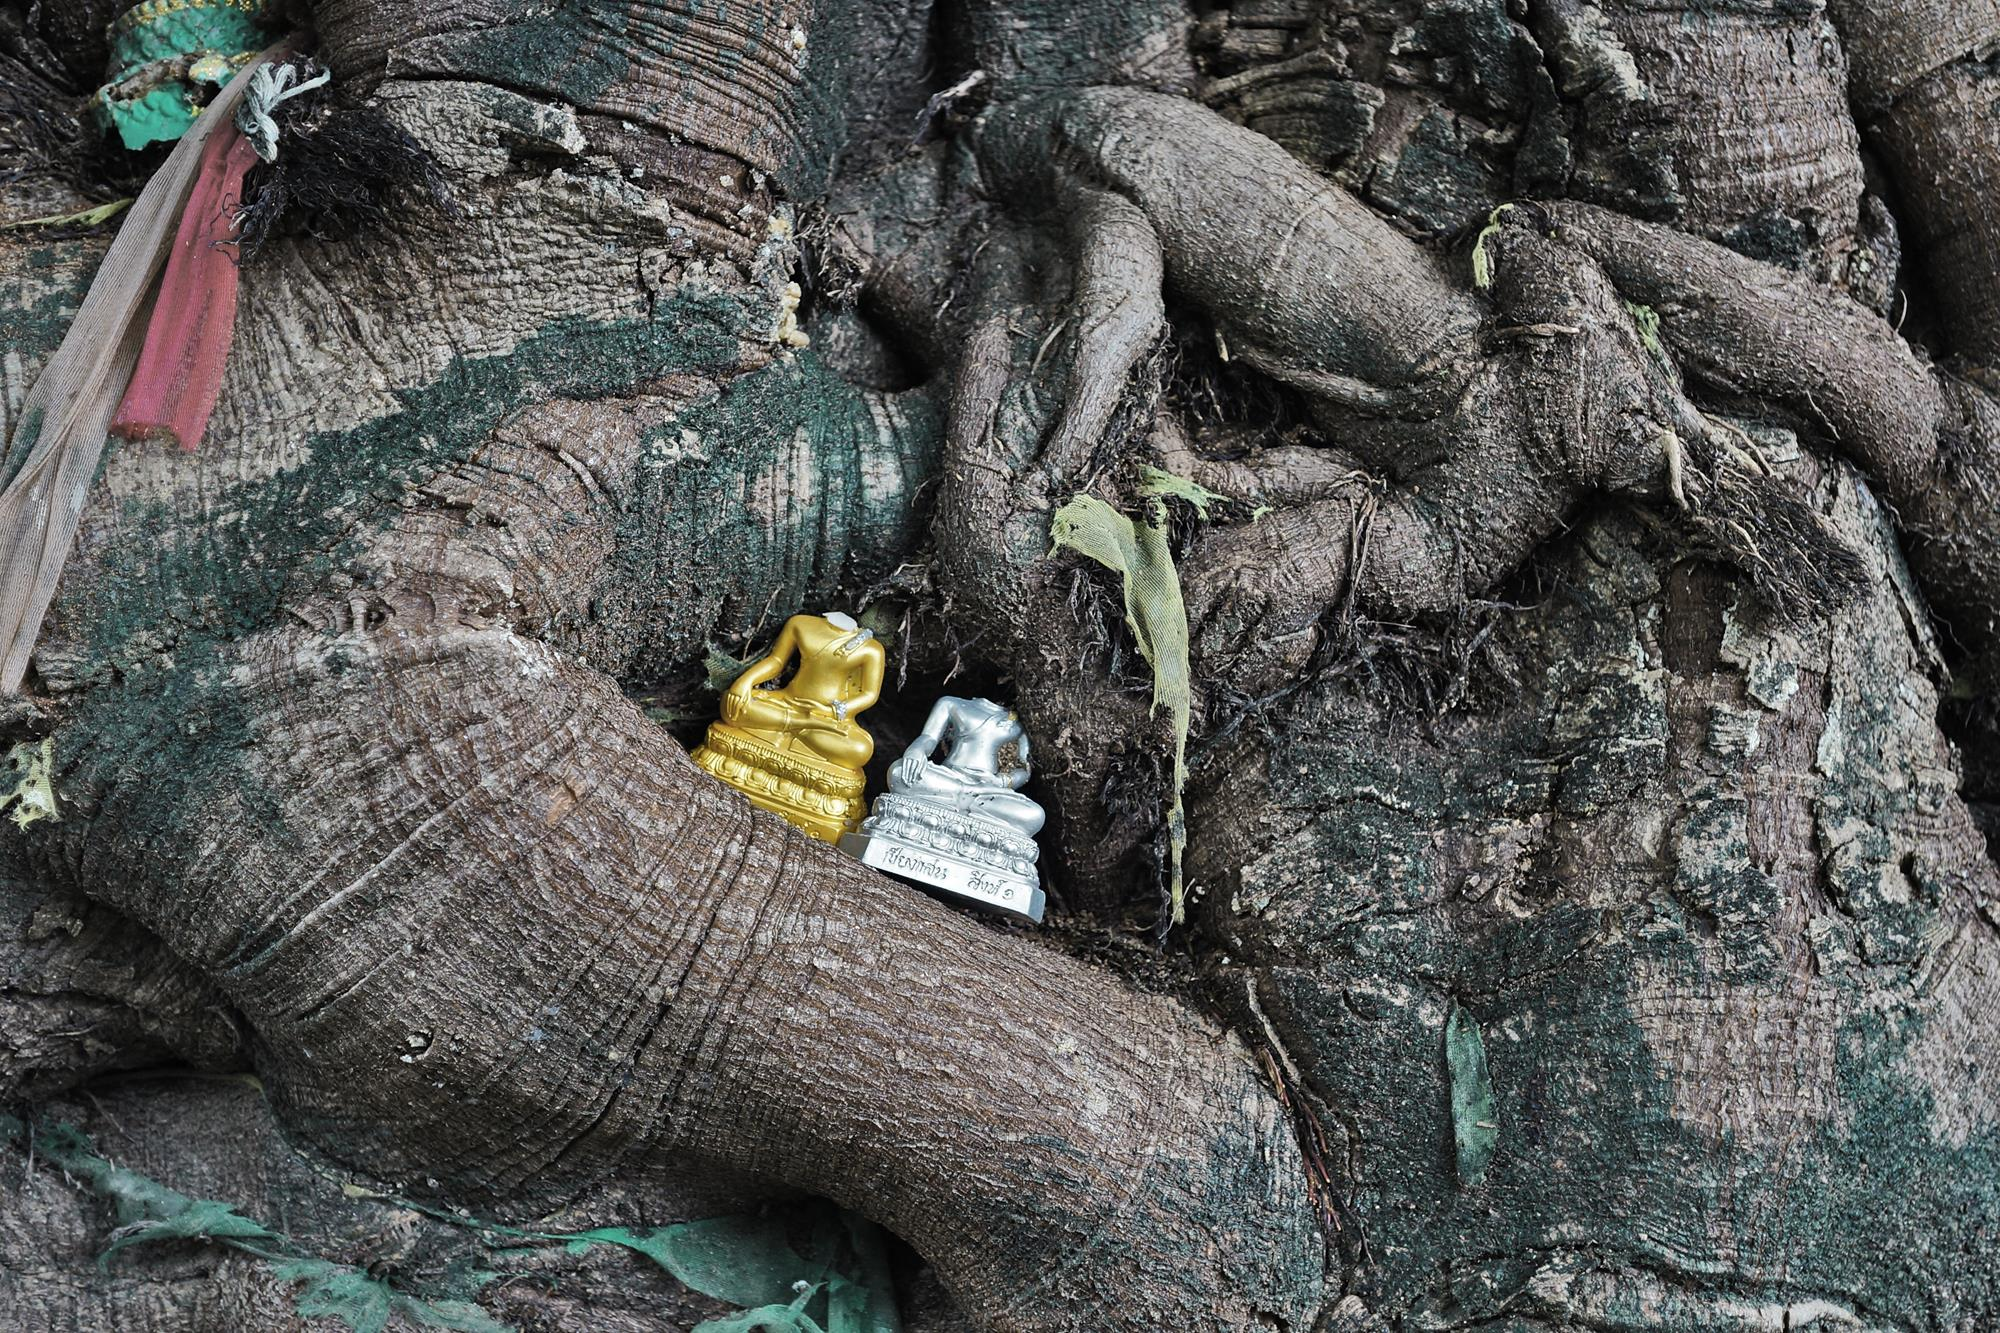 two headless buddhas under tree